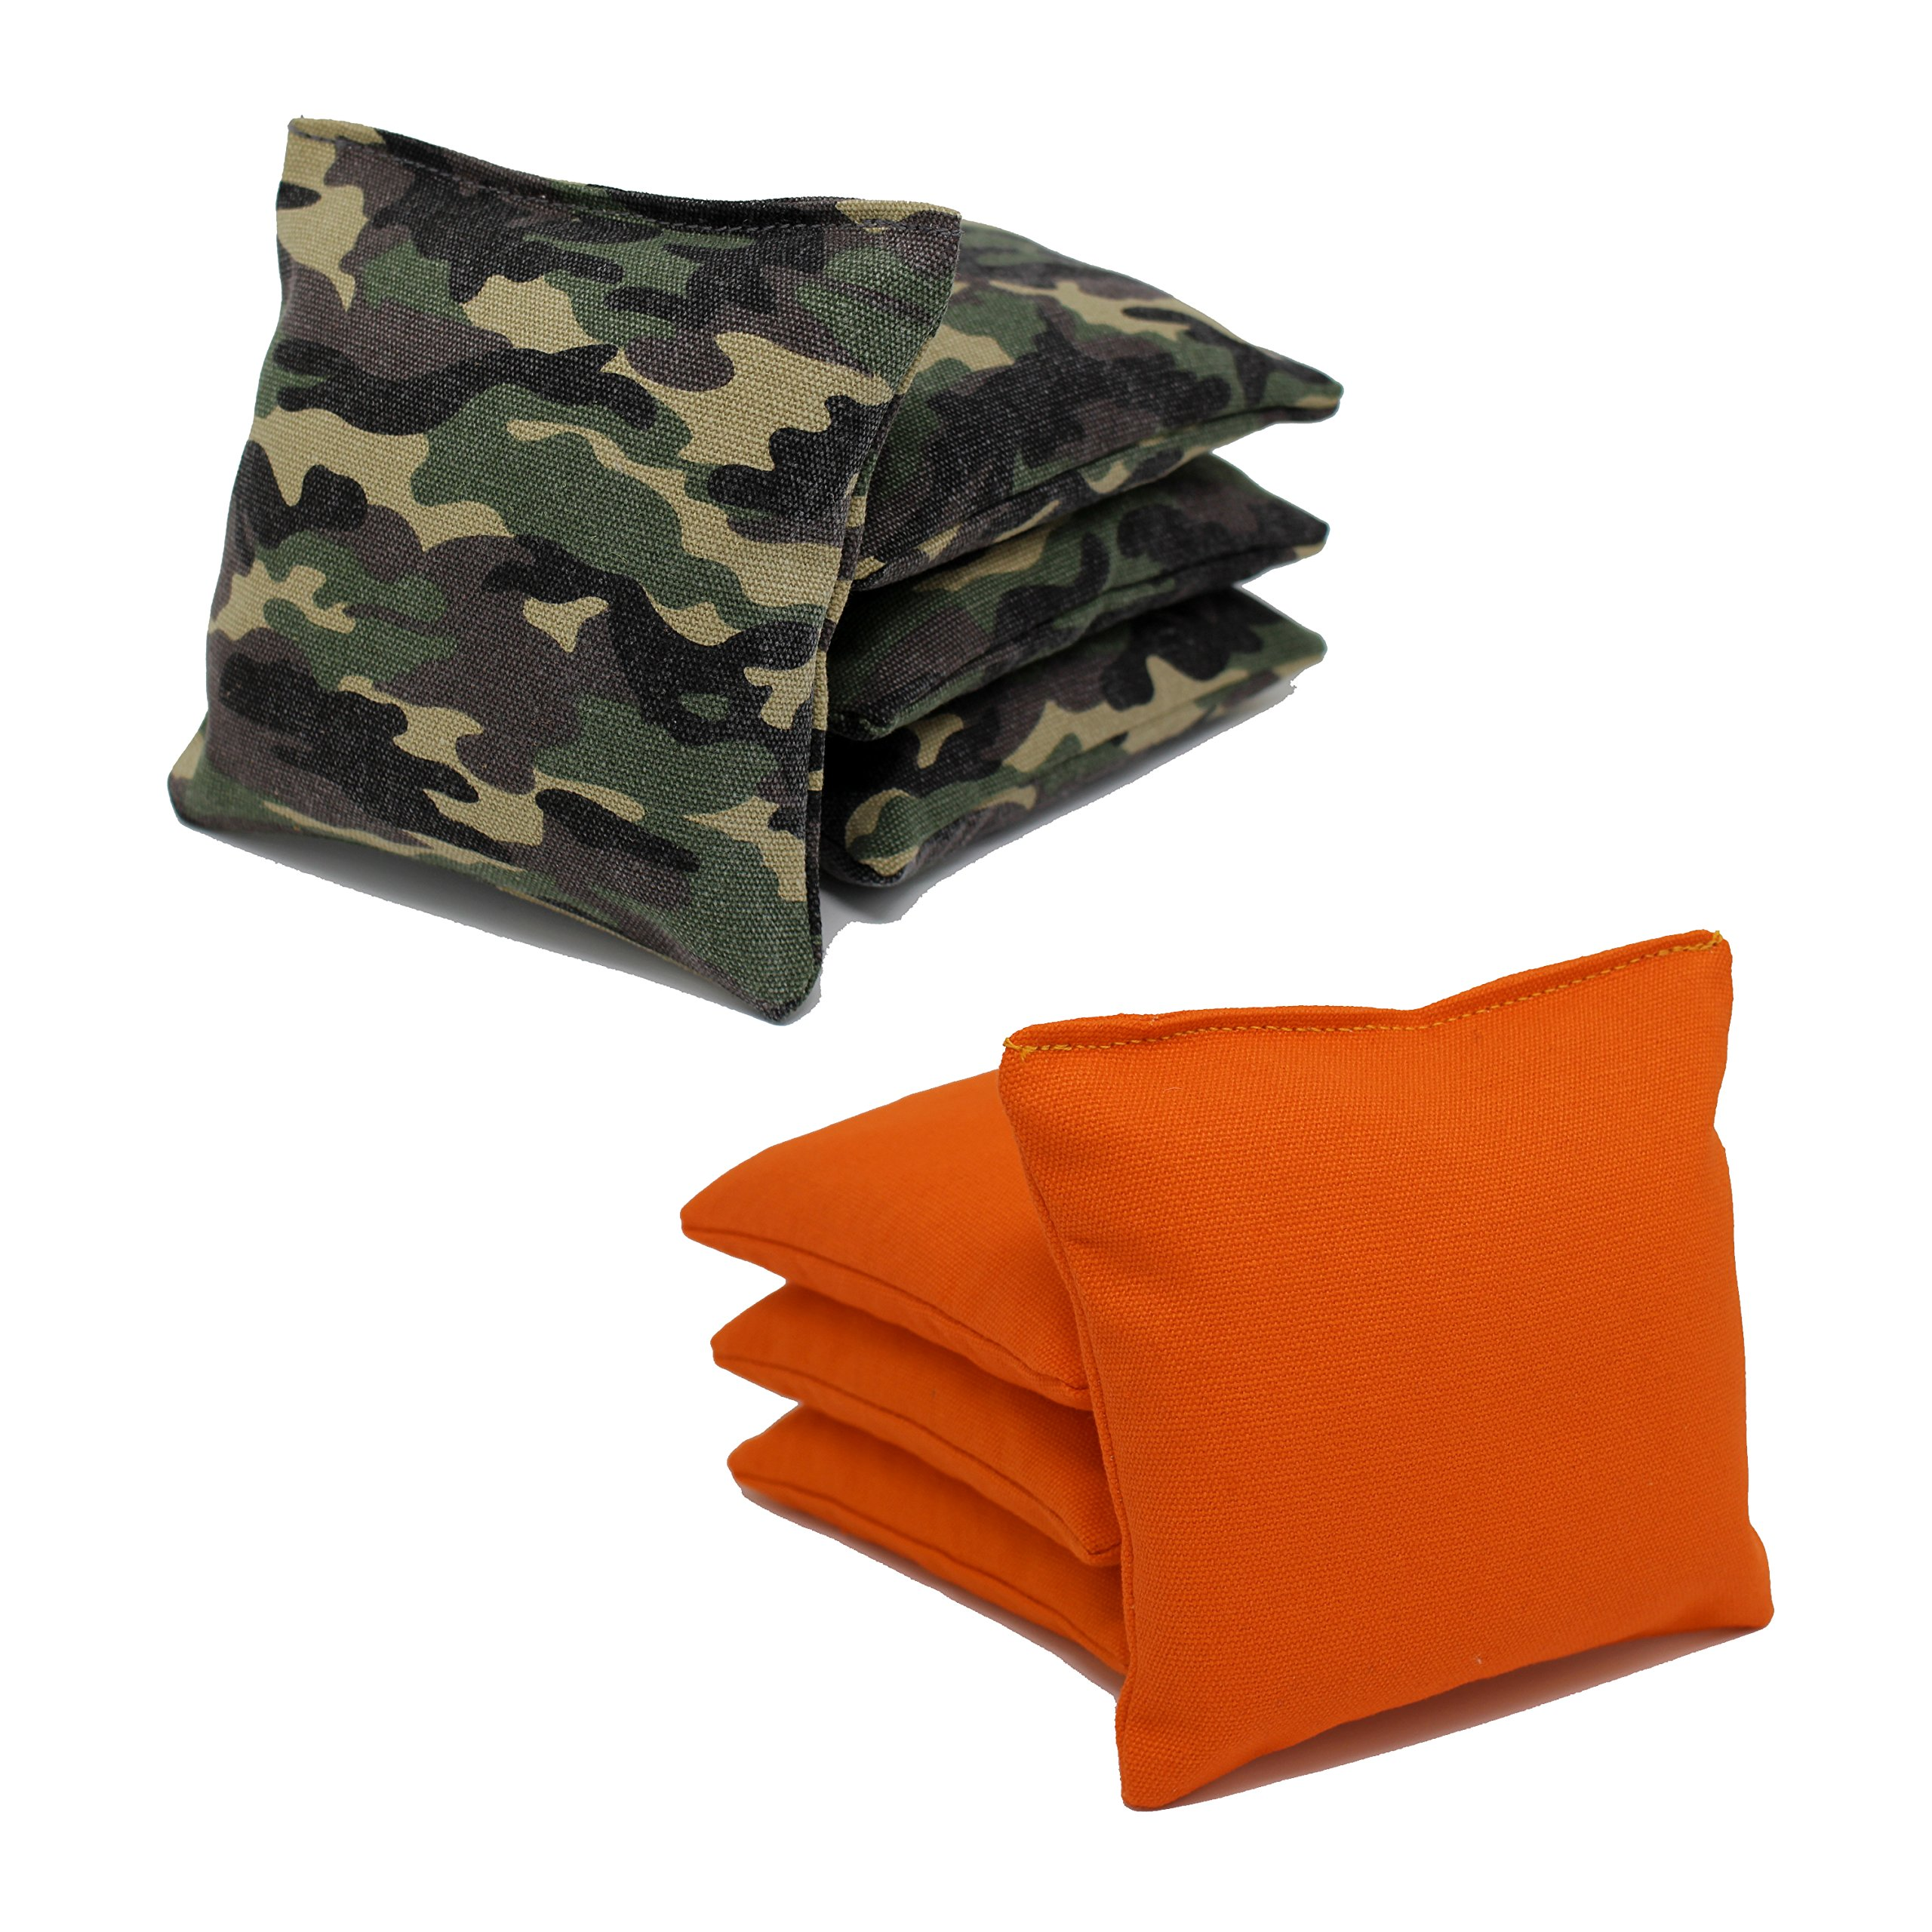 Free Donkey Sports 8 ACA Regulation Cornhole Bags.Corn-Filled 25 Colors (Camo/Orange) by Free Donkey Sports